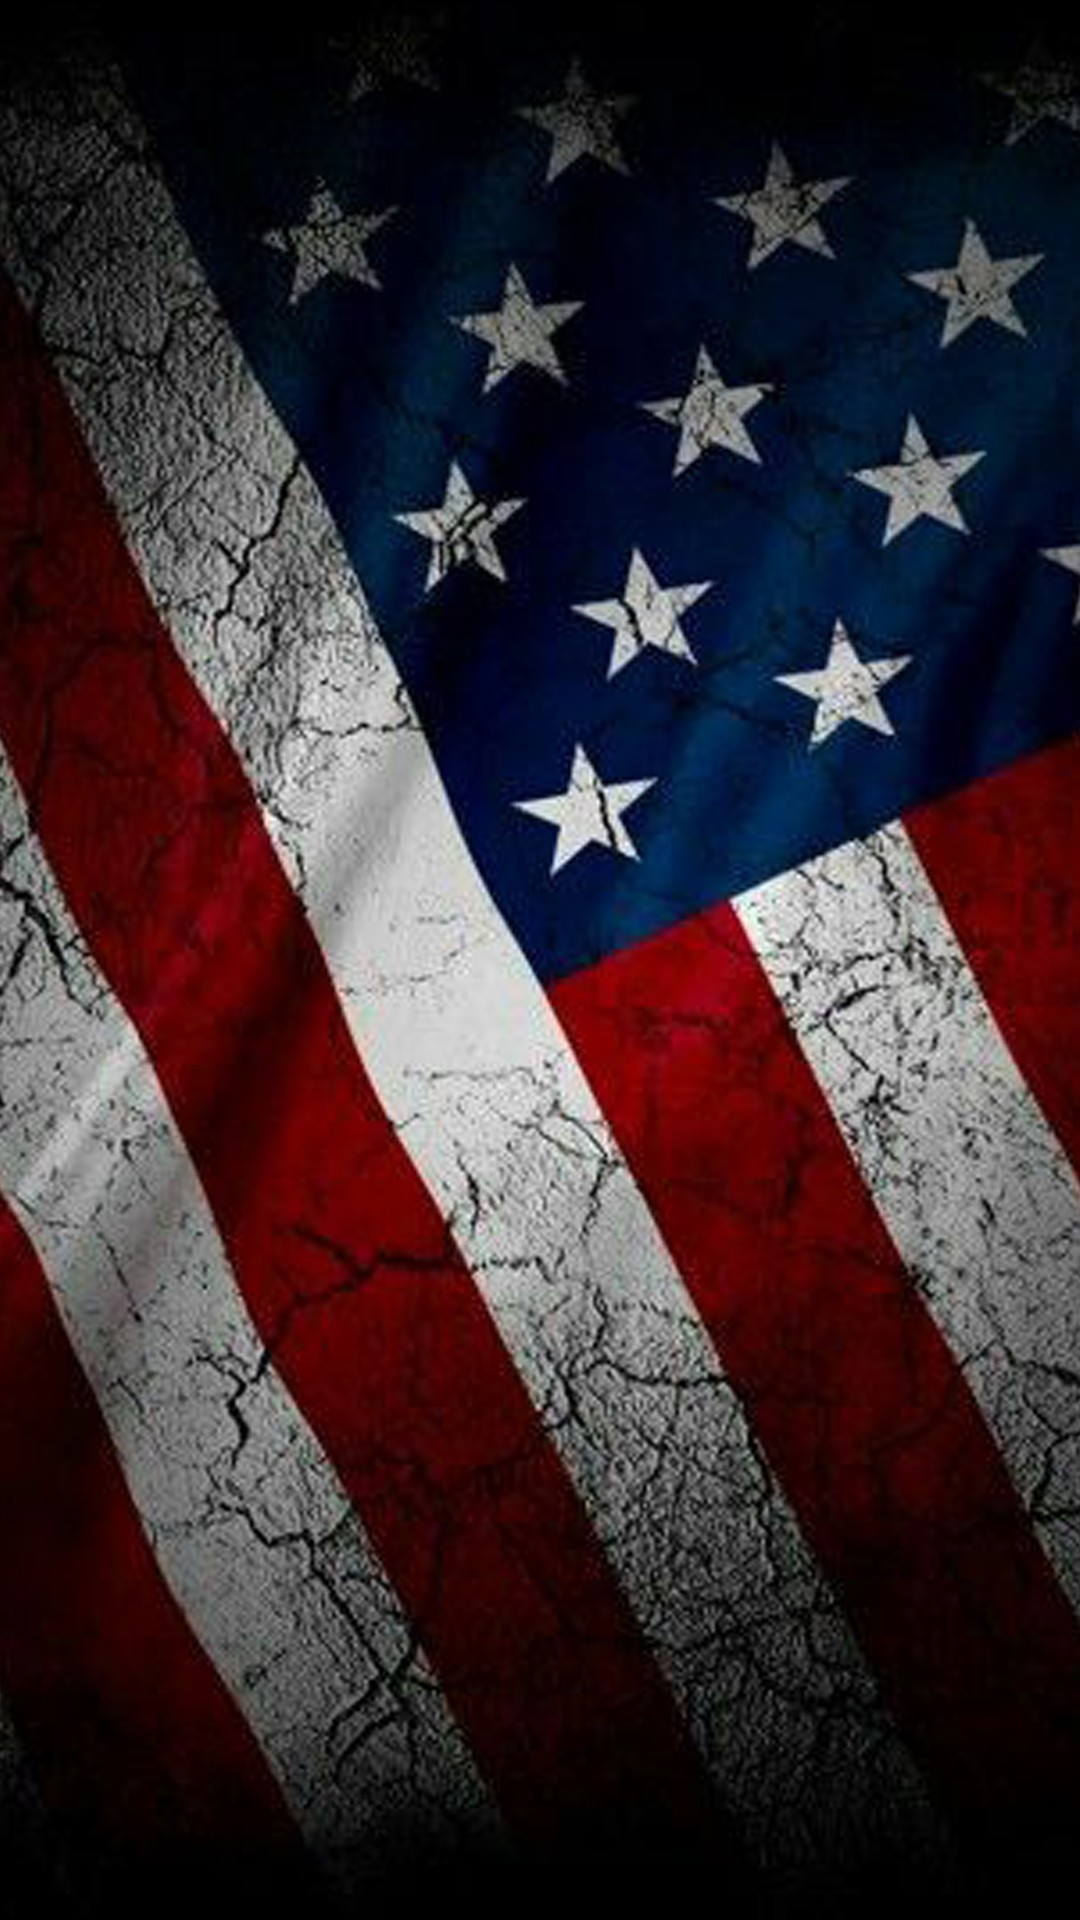 american flag wallpaper iphone  Cool American Flag iPhone Wallpapers (79  images)